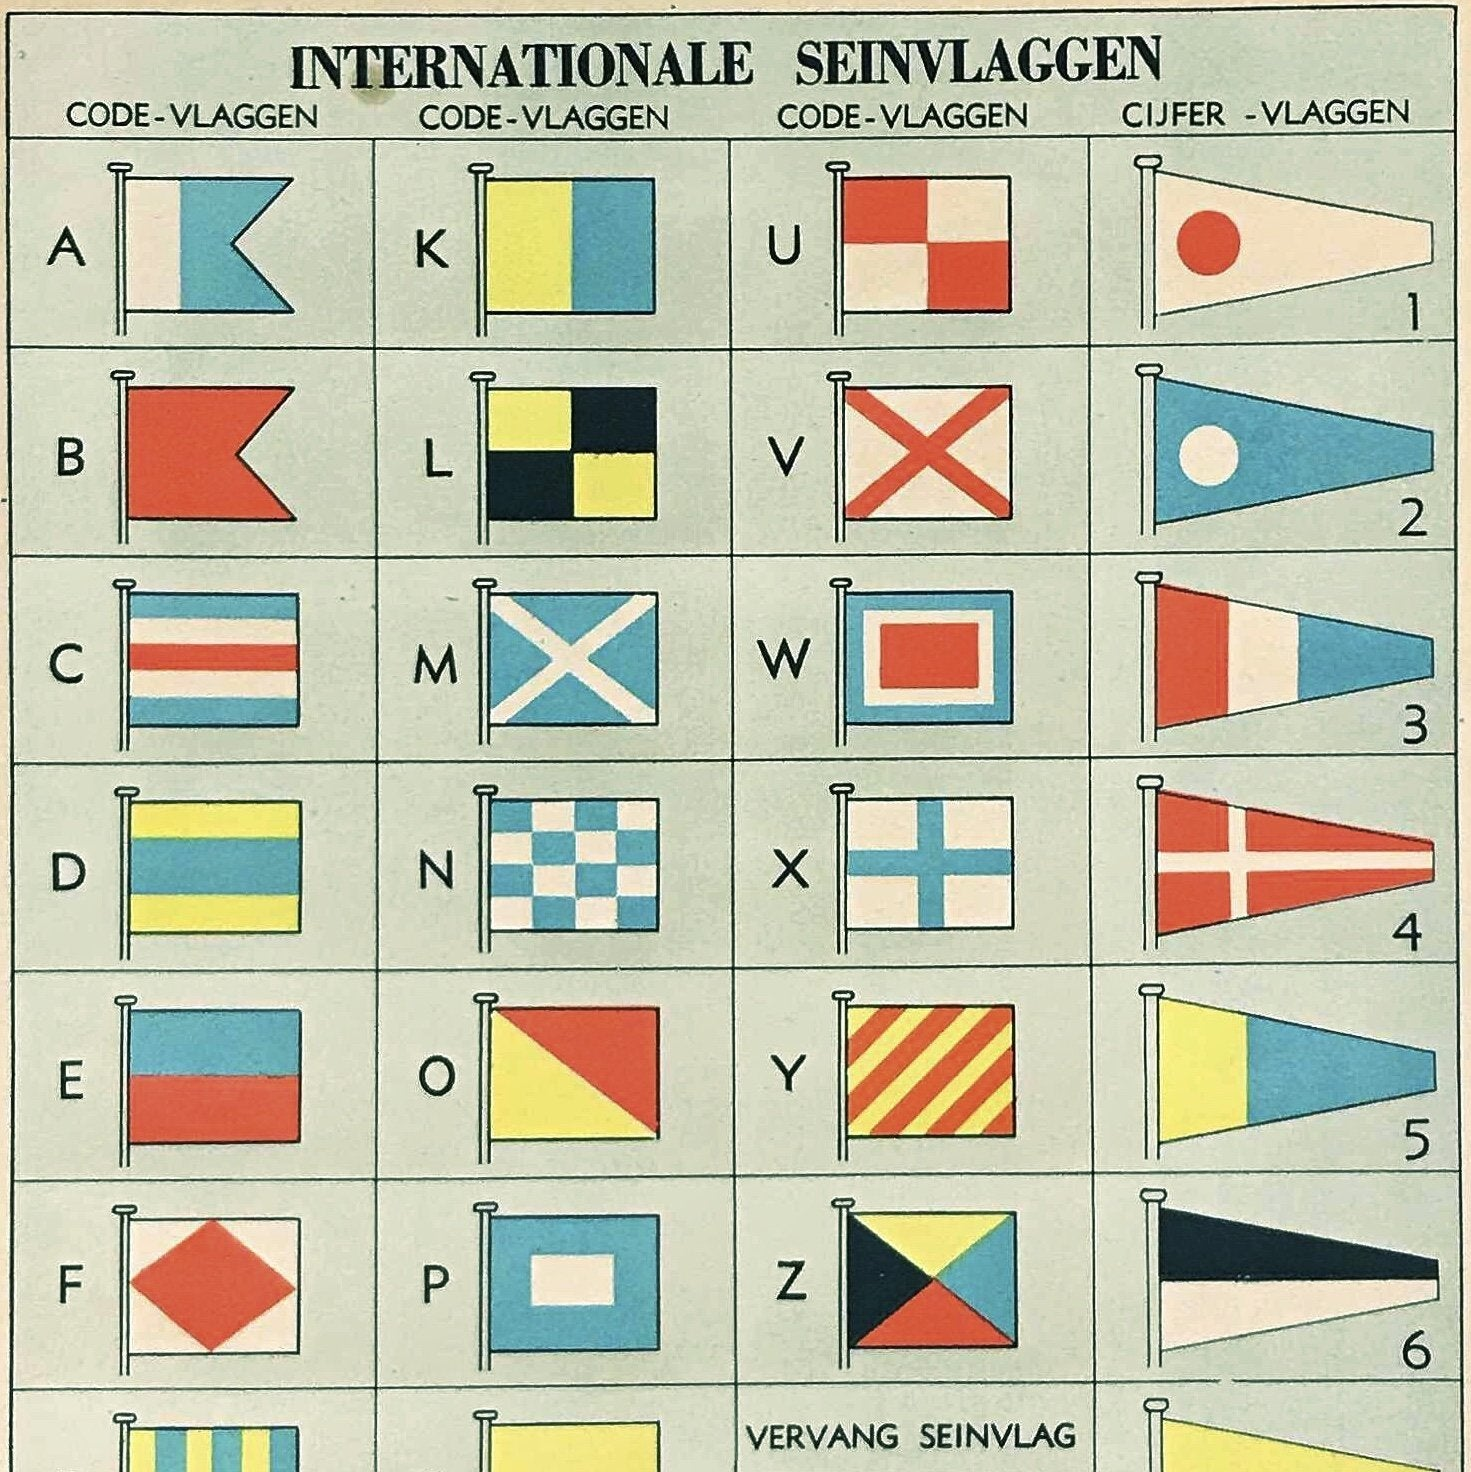 Internationale Seinvlaggen - World of Maps & Travel